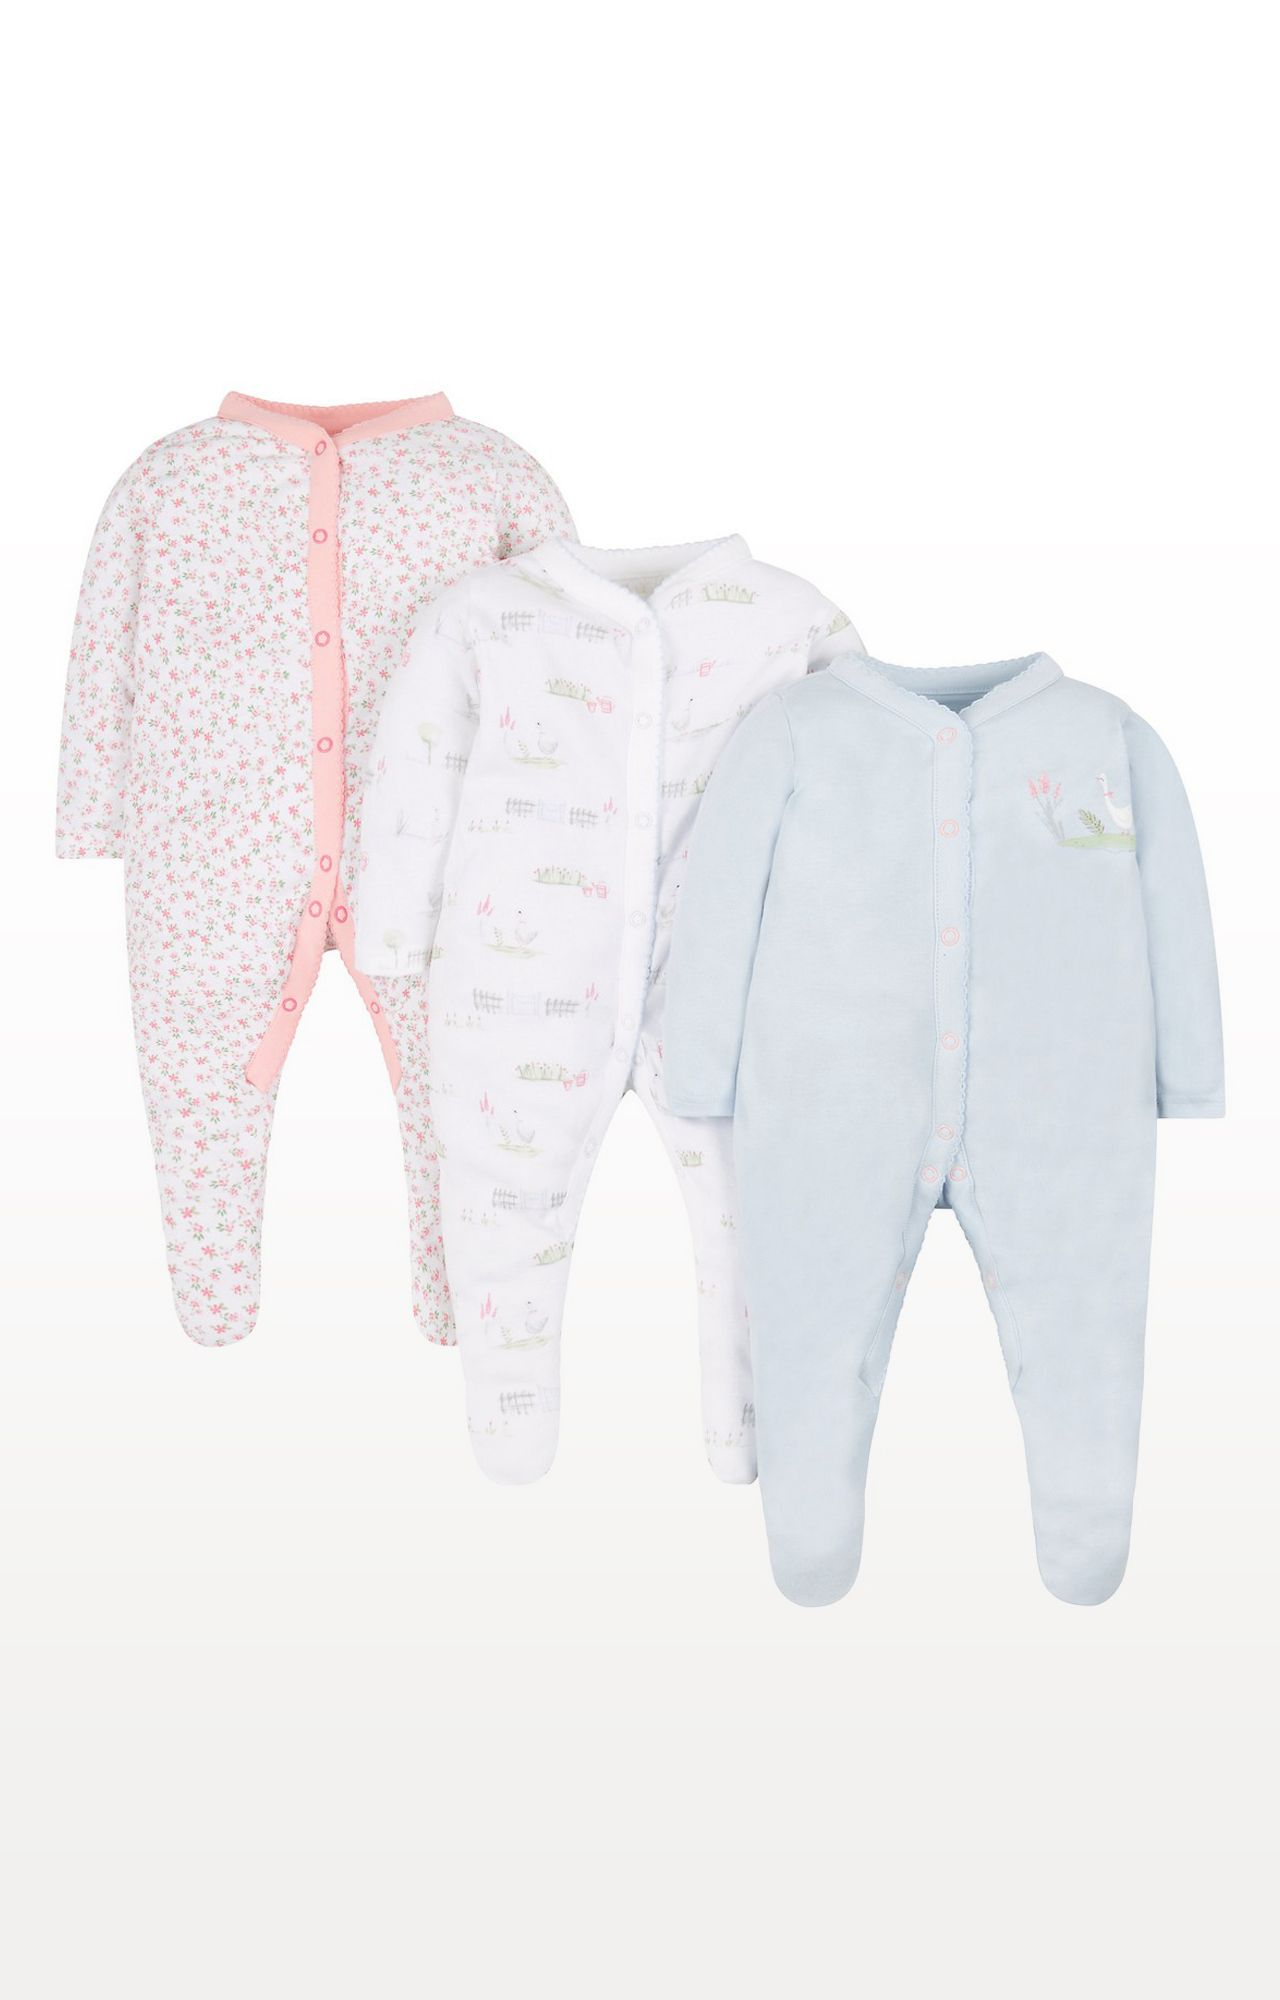 Mothercare | Pink Printed Floral Geese Sleepsuits - Pack of 3